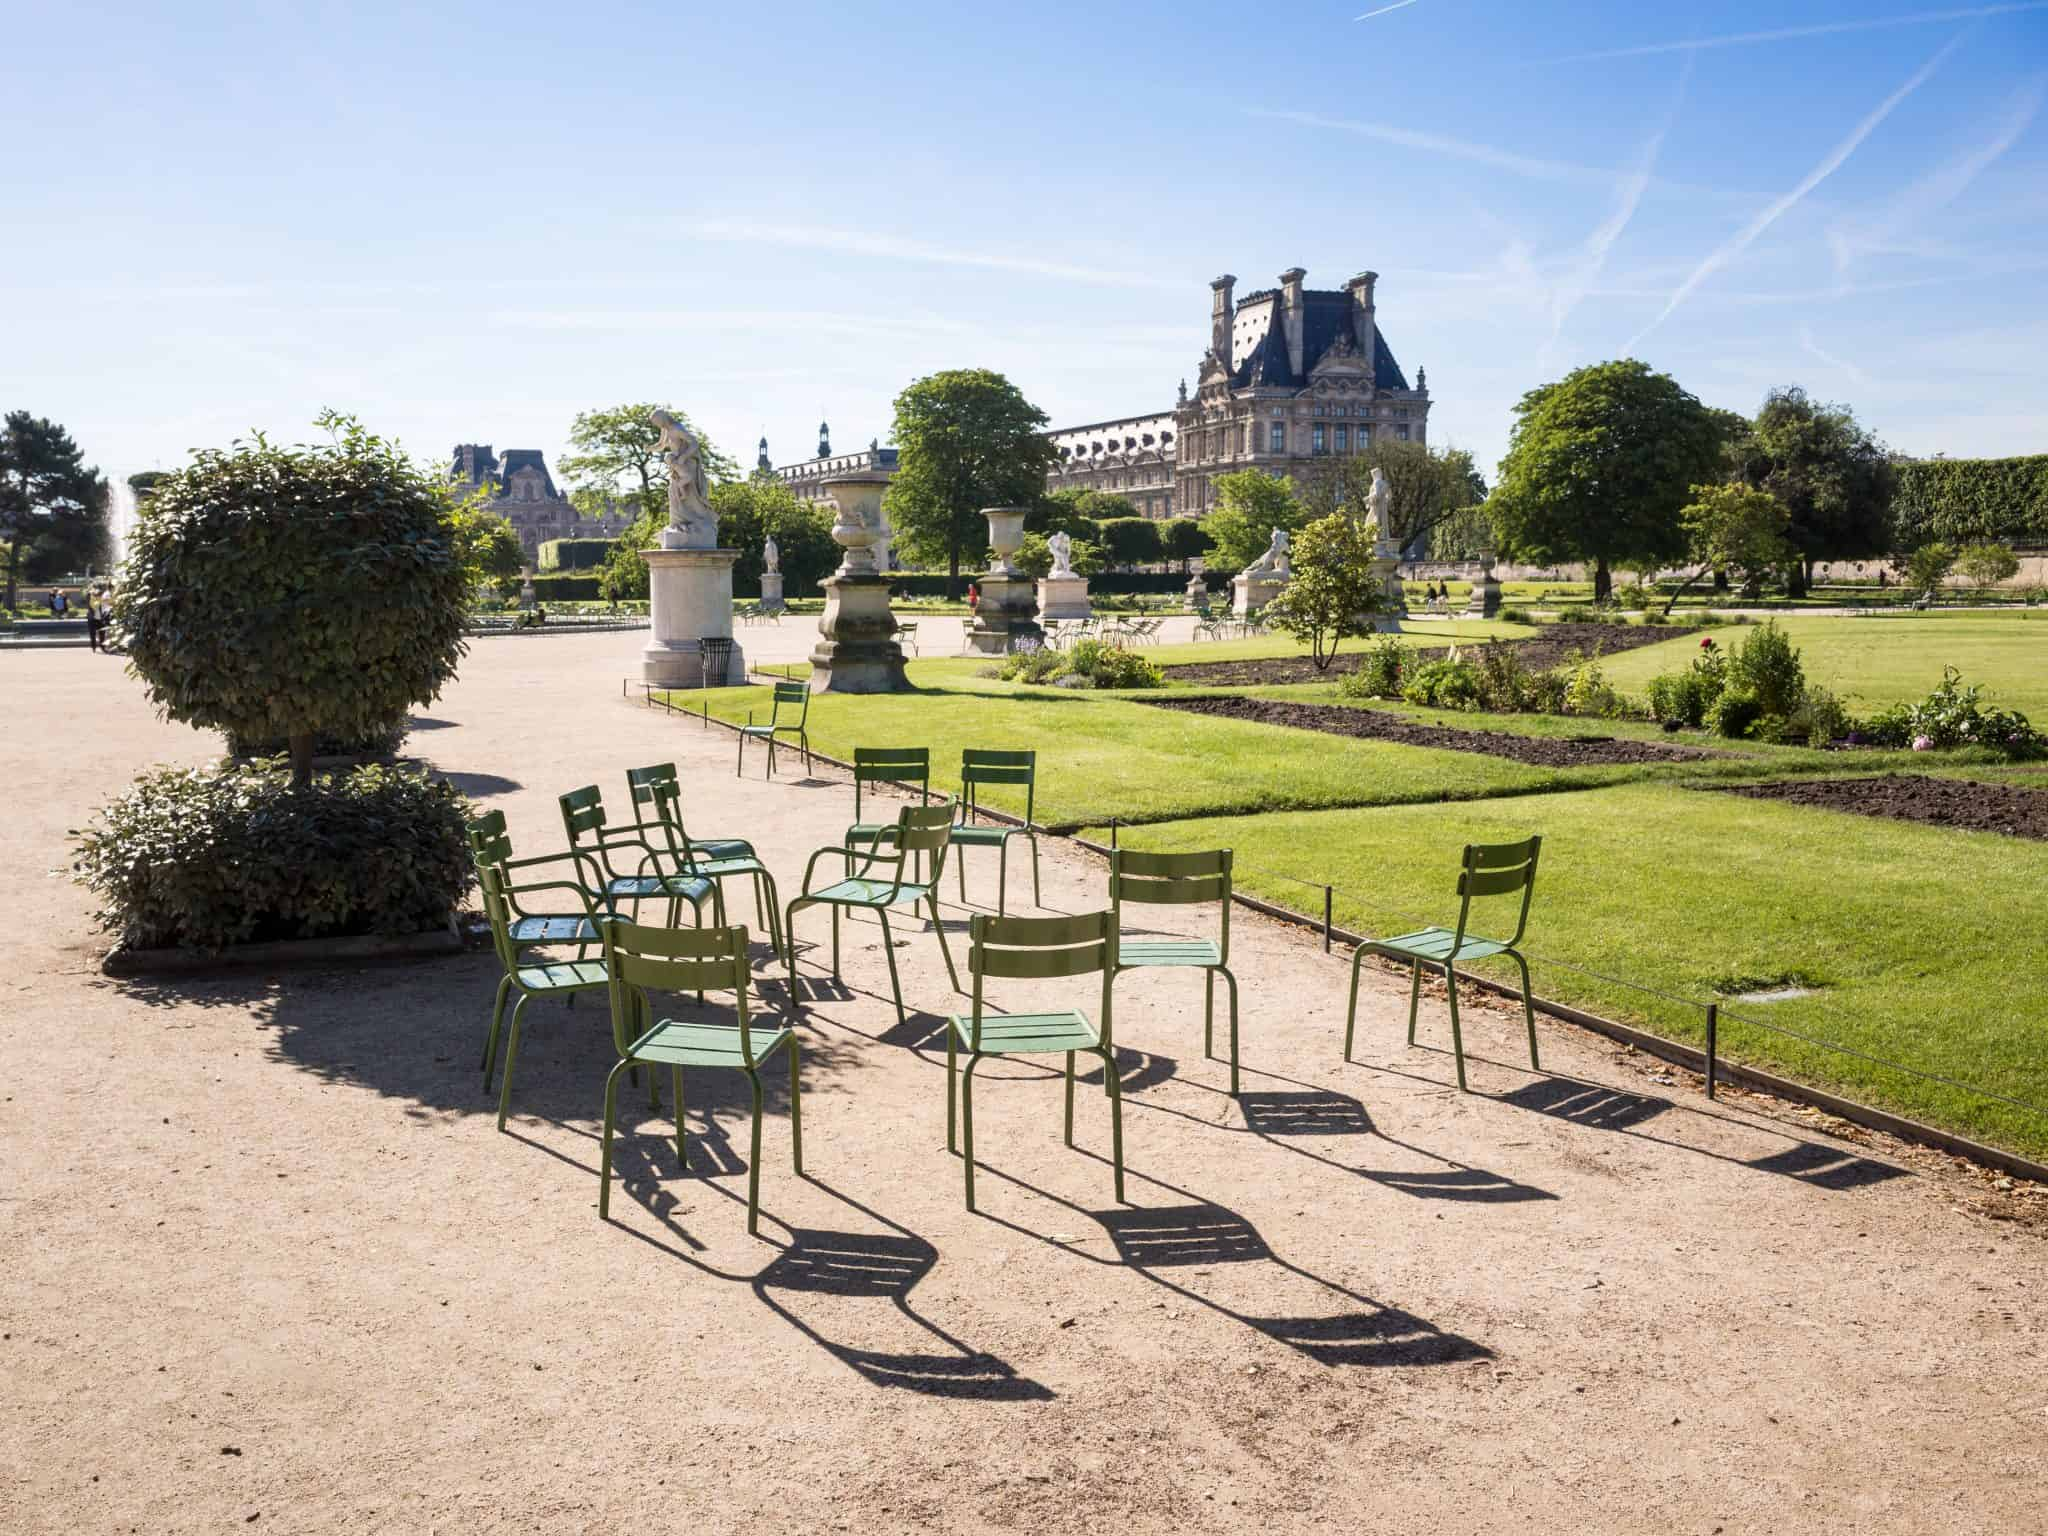 Comfortable Chairs in the Tuileries Gardens - 4 days Paris